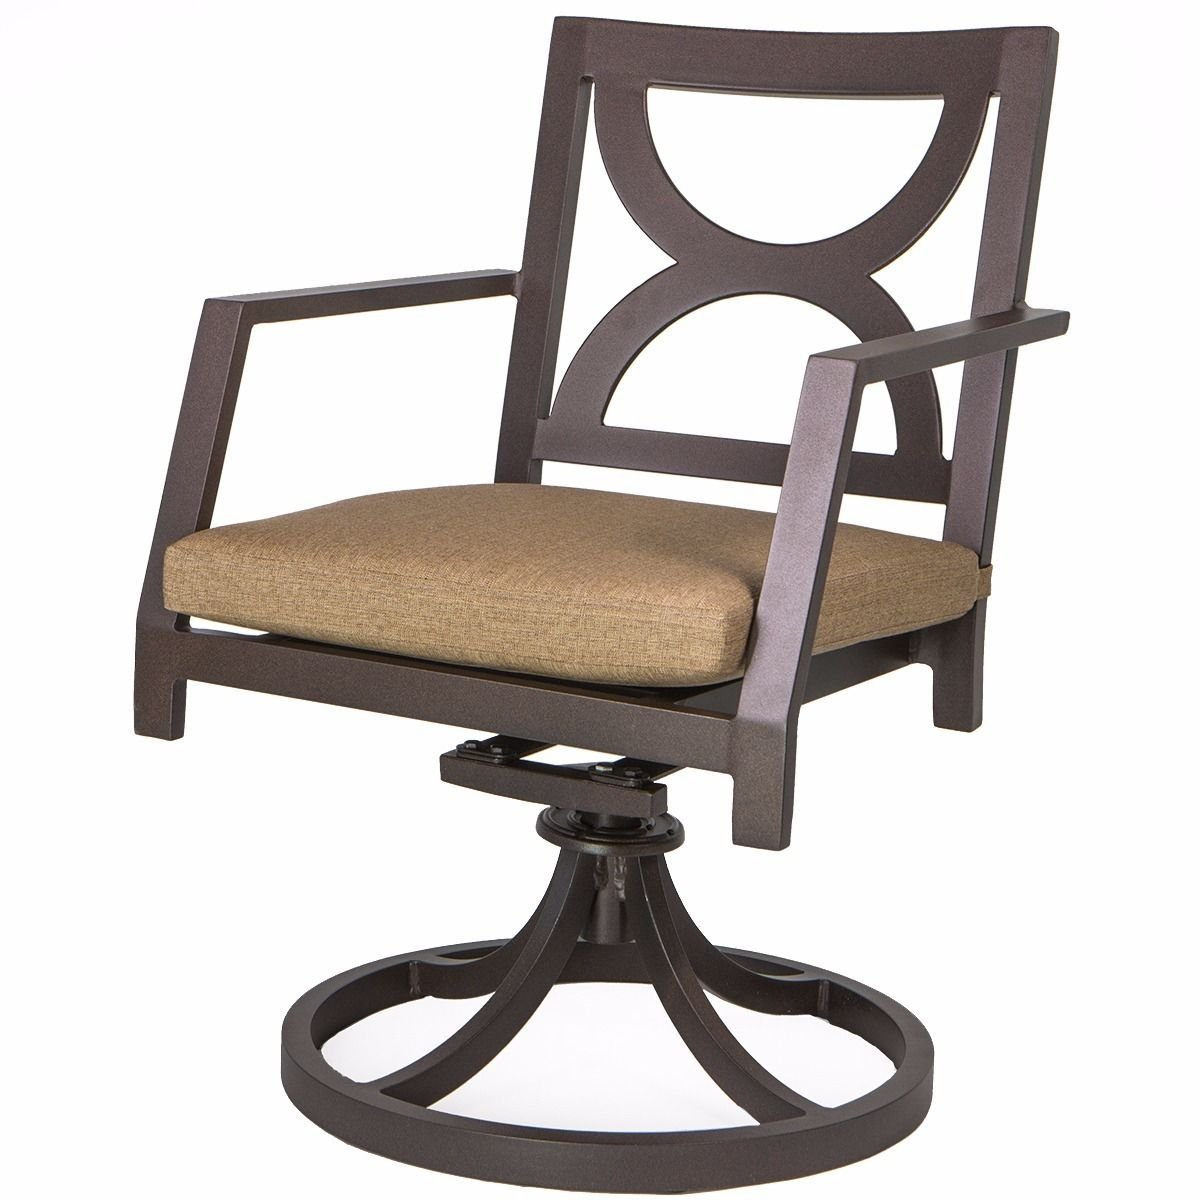 swivel chair cushions high stool chairs cheap rocker cushion find get quotations 9trading outdoor patio dining cast powder coated seat bronze free tax